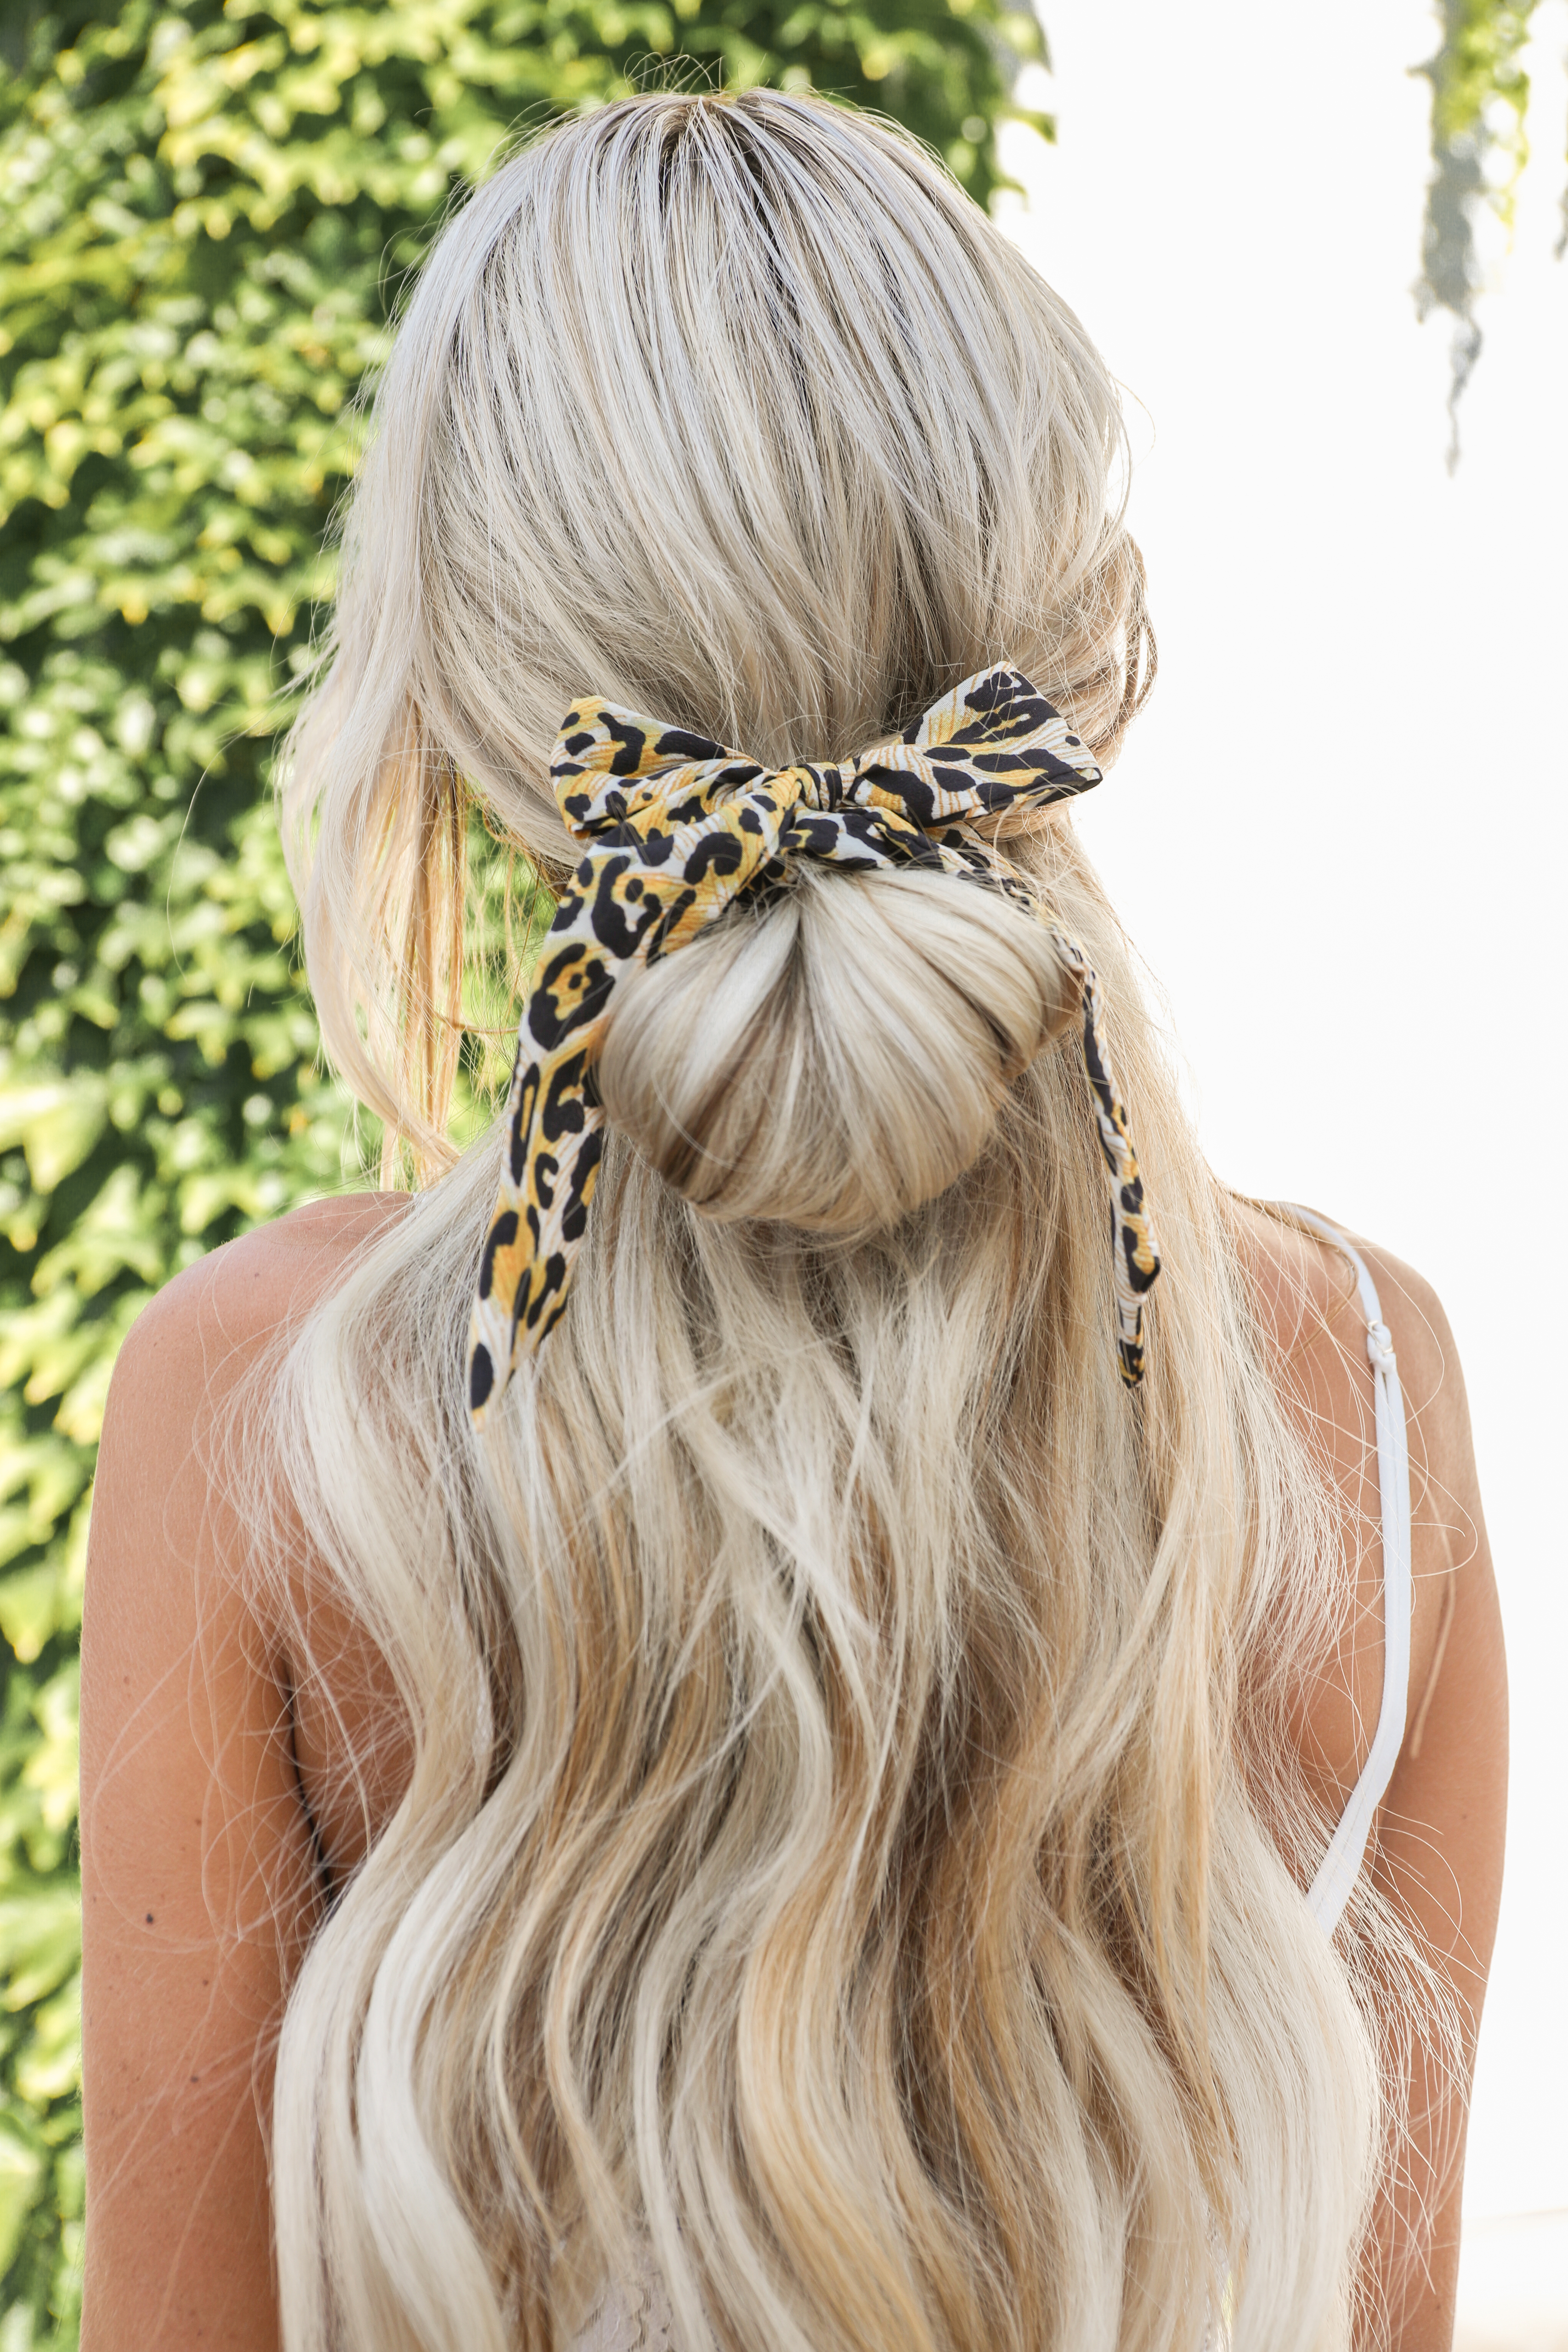 Dandelion and Black Leopard Print Scrunchie with Tie Detail